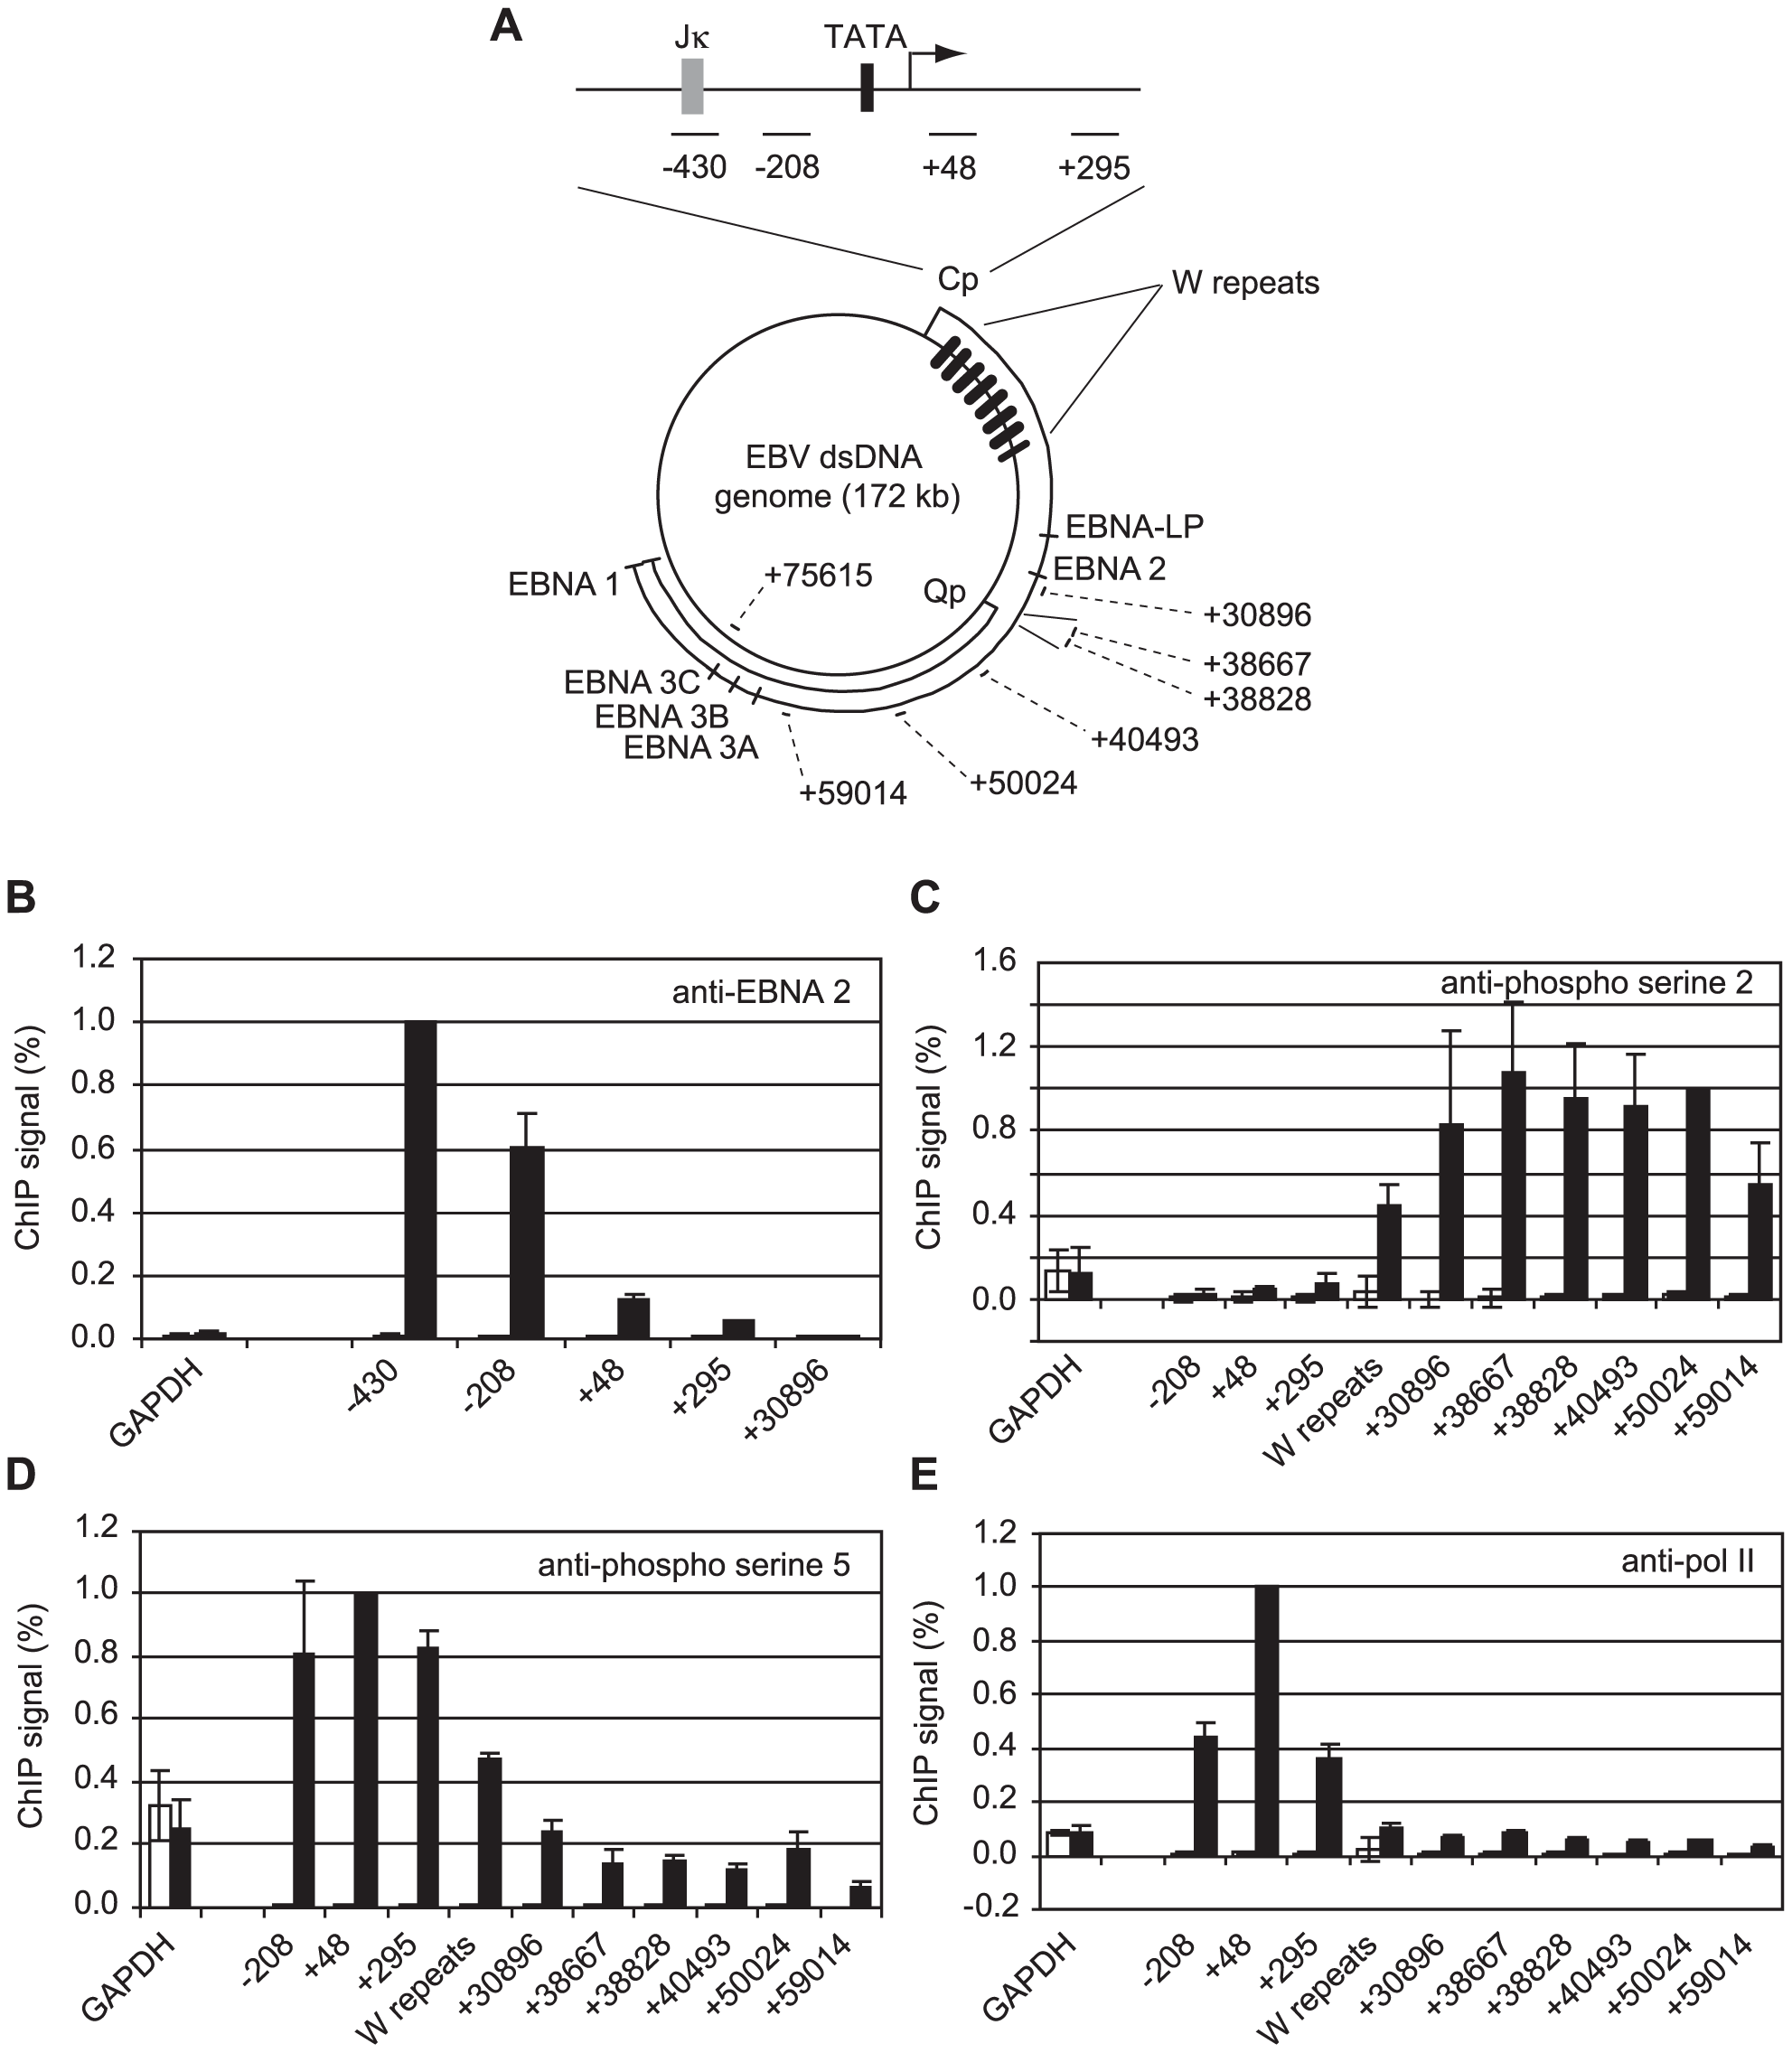 High-level pol II accumulation at Cp and CTD phosphorylation at distal EBV genome regions.